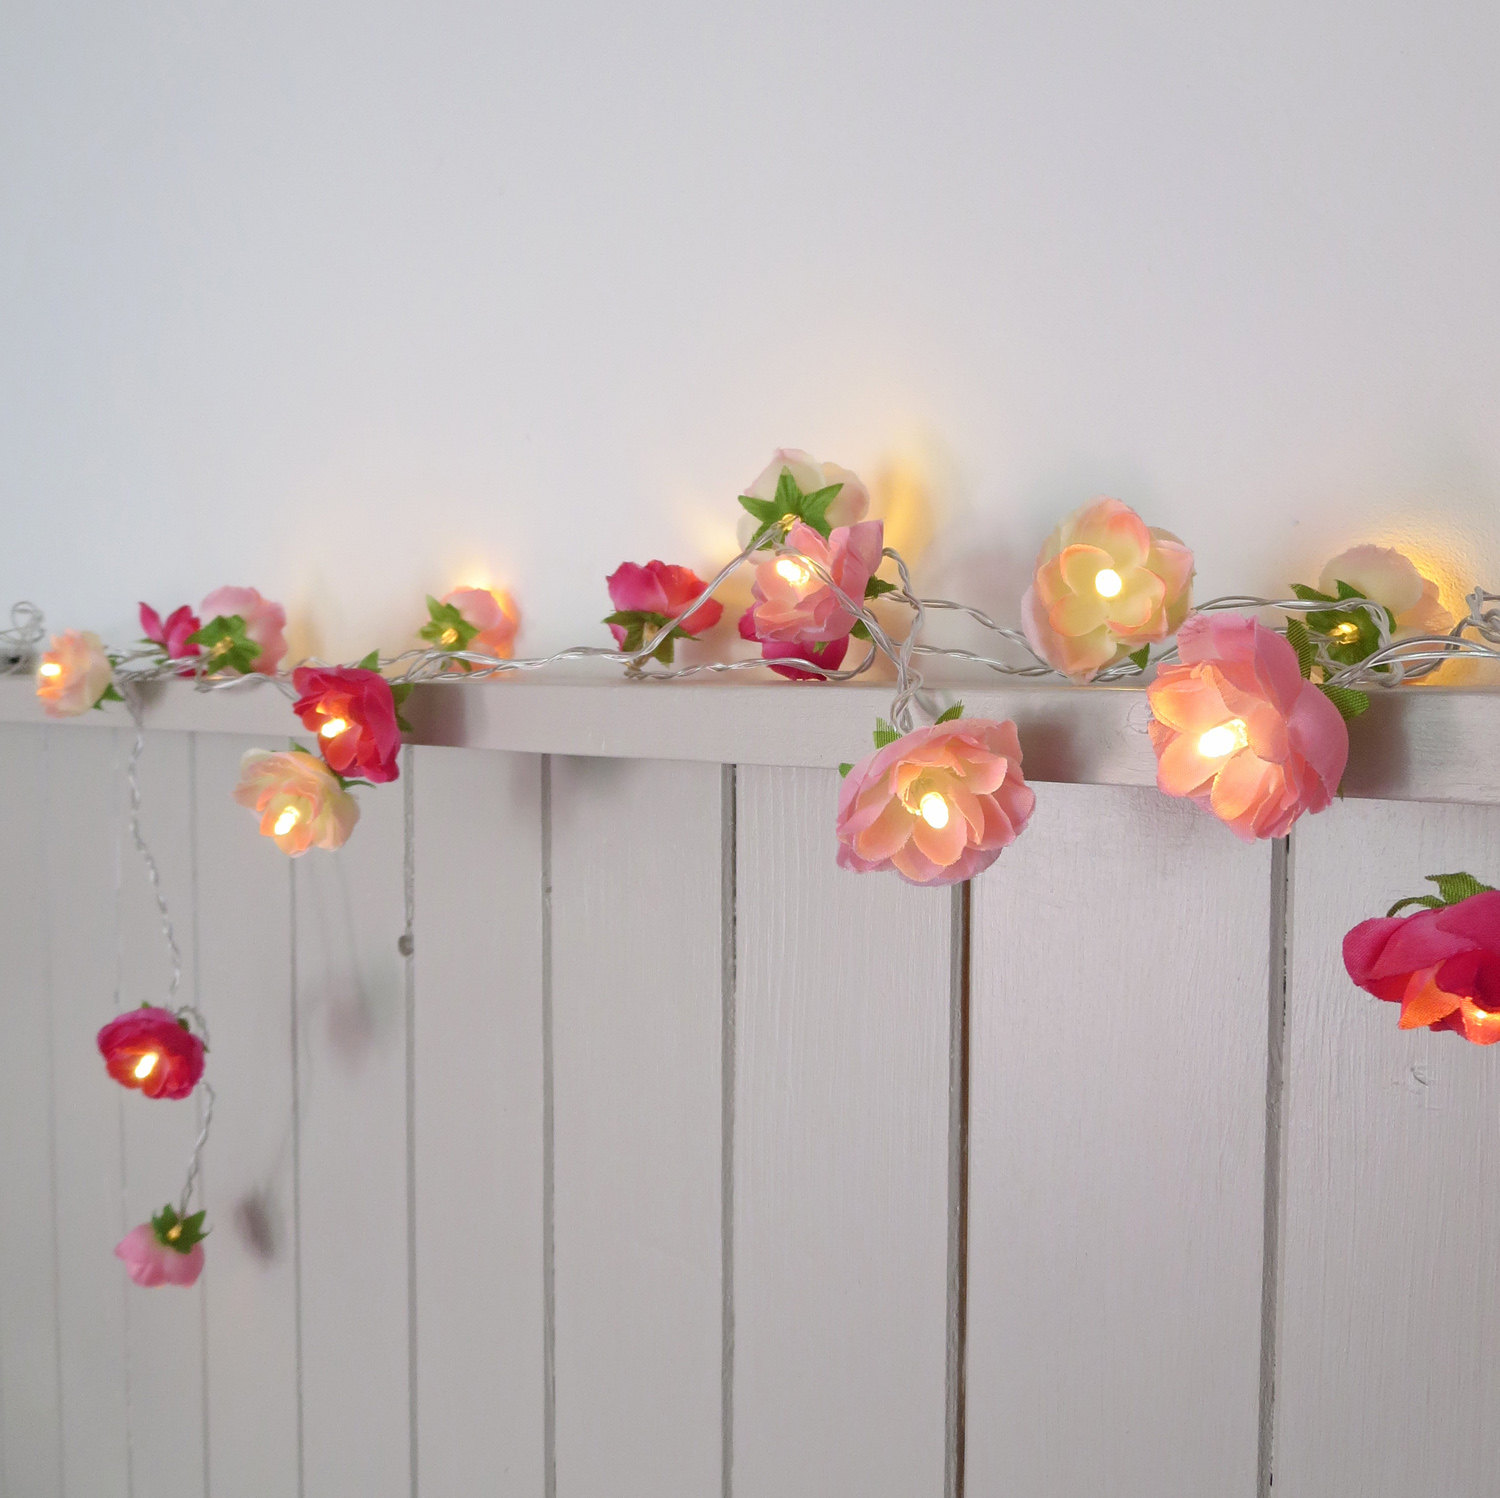 12 String Lights To Brighten Up Your Grownup Space, Now That You've Finally  Traded In That Dorm Room Decor